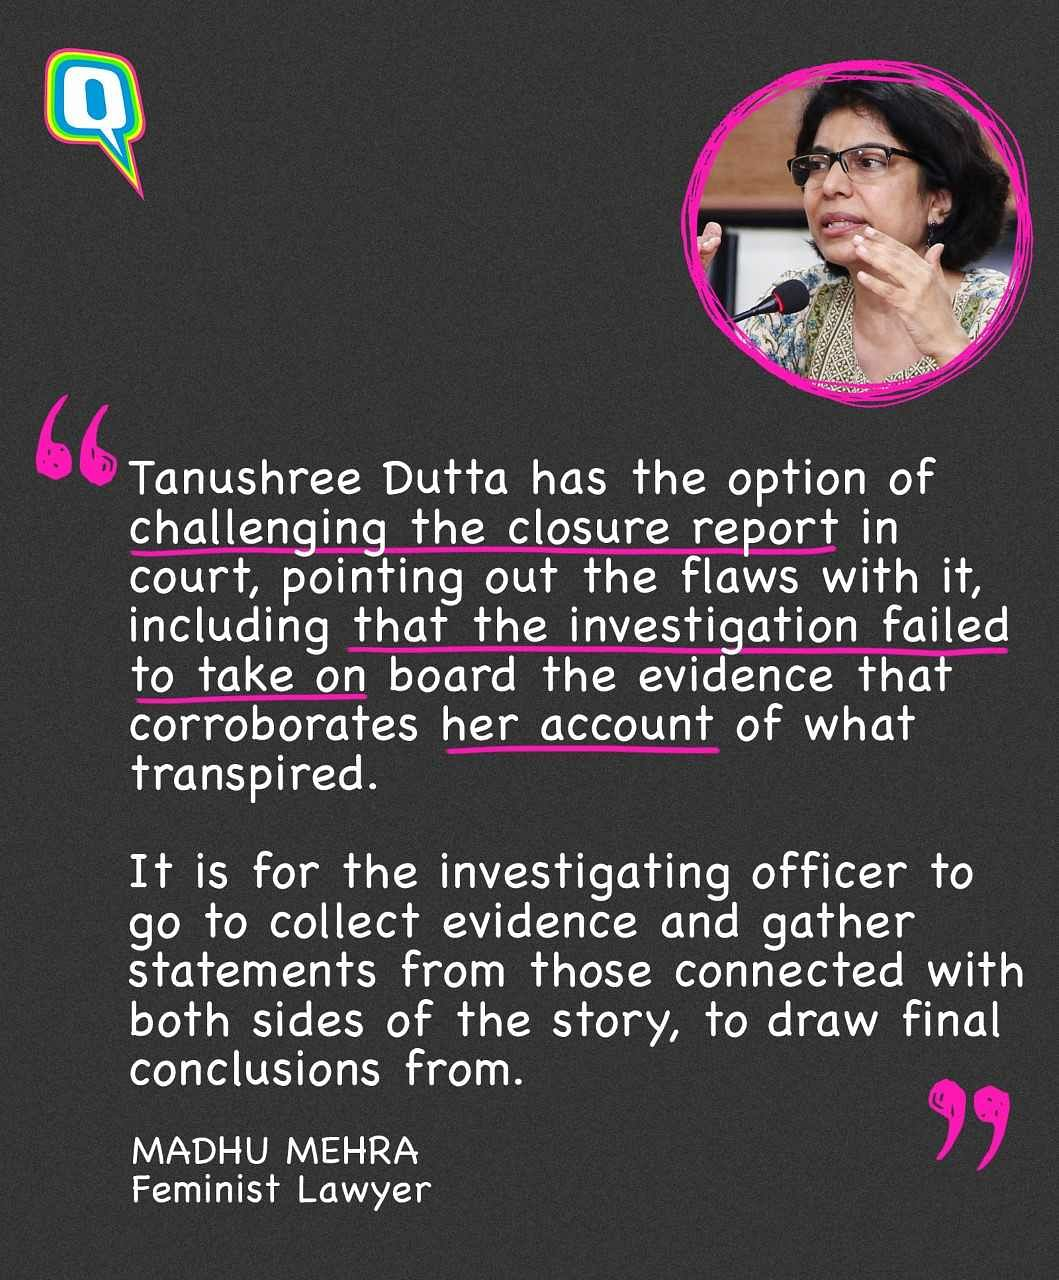 Has the Legal System Been A Trap For Tanushree's #MeToo?